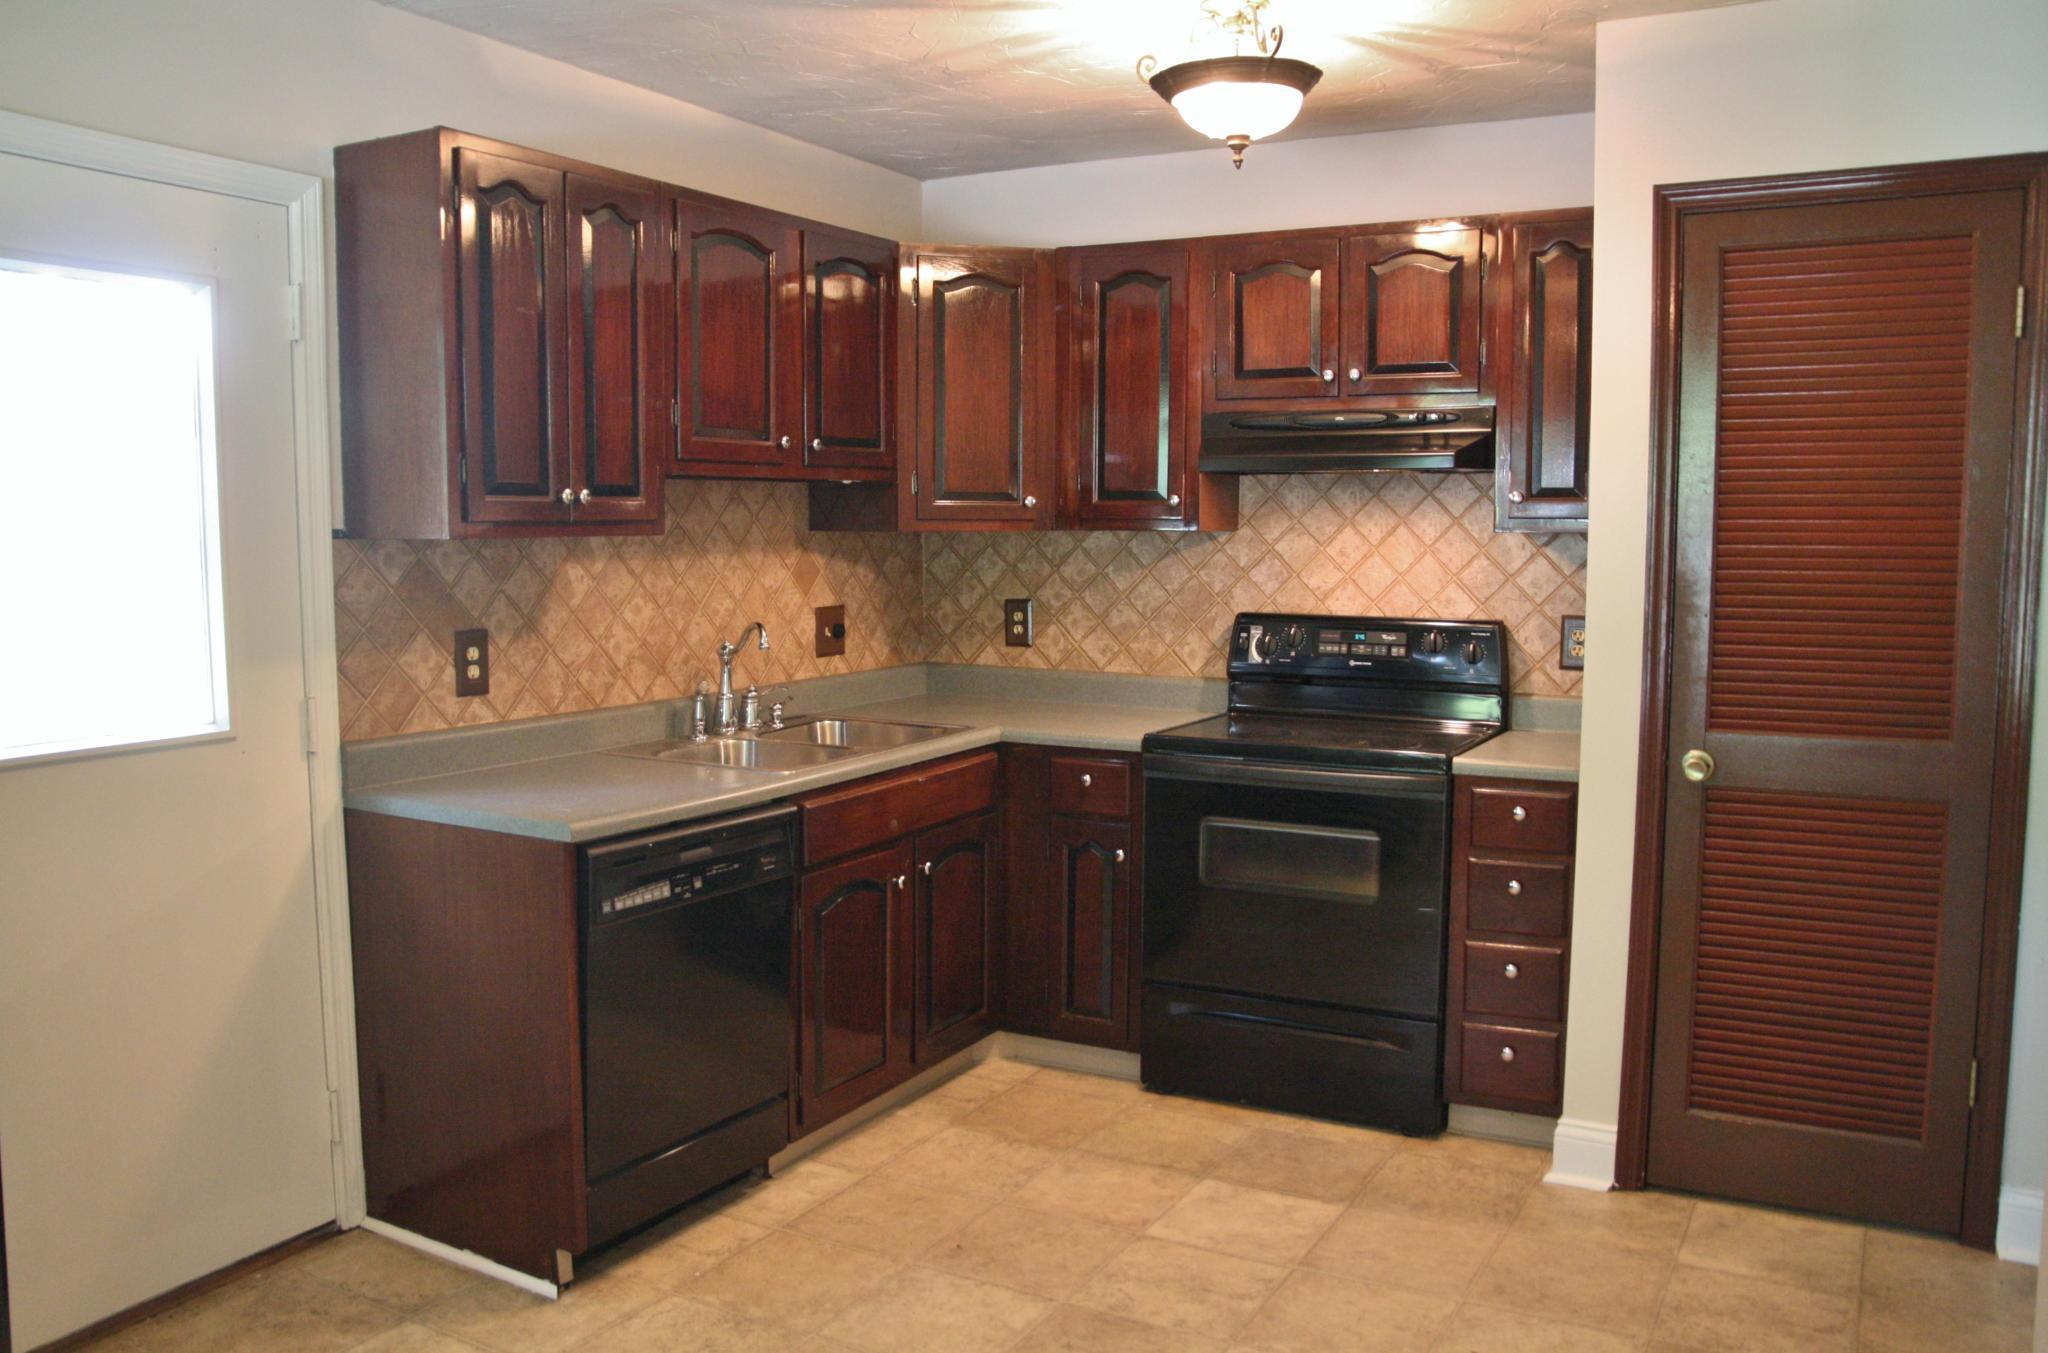 6011 Willow Spring Rd, Harrisburg, PA 17111 For Rent | Trulia